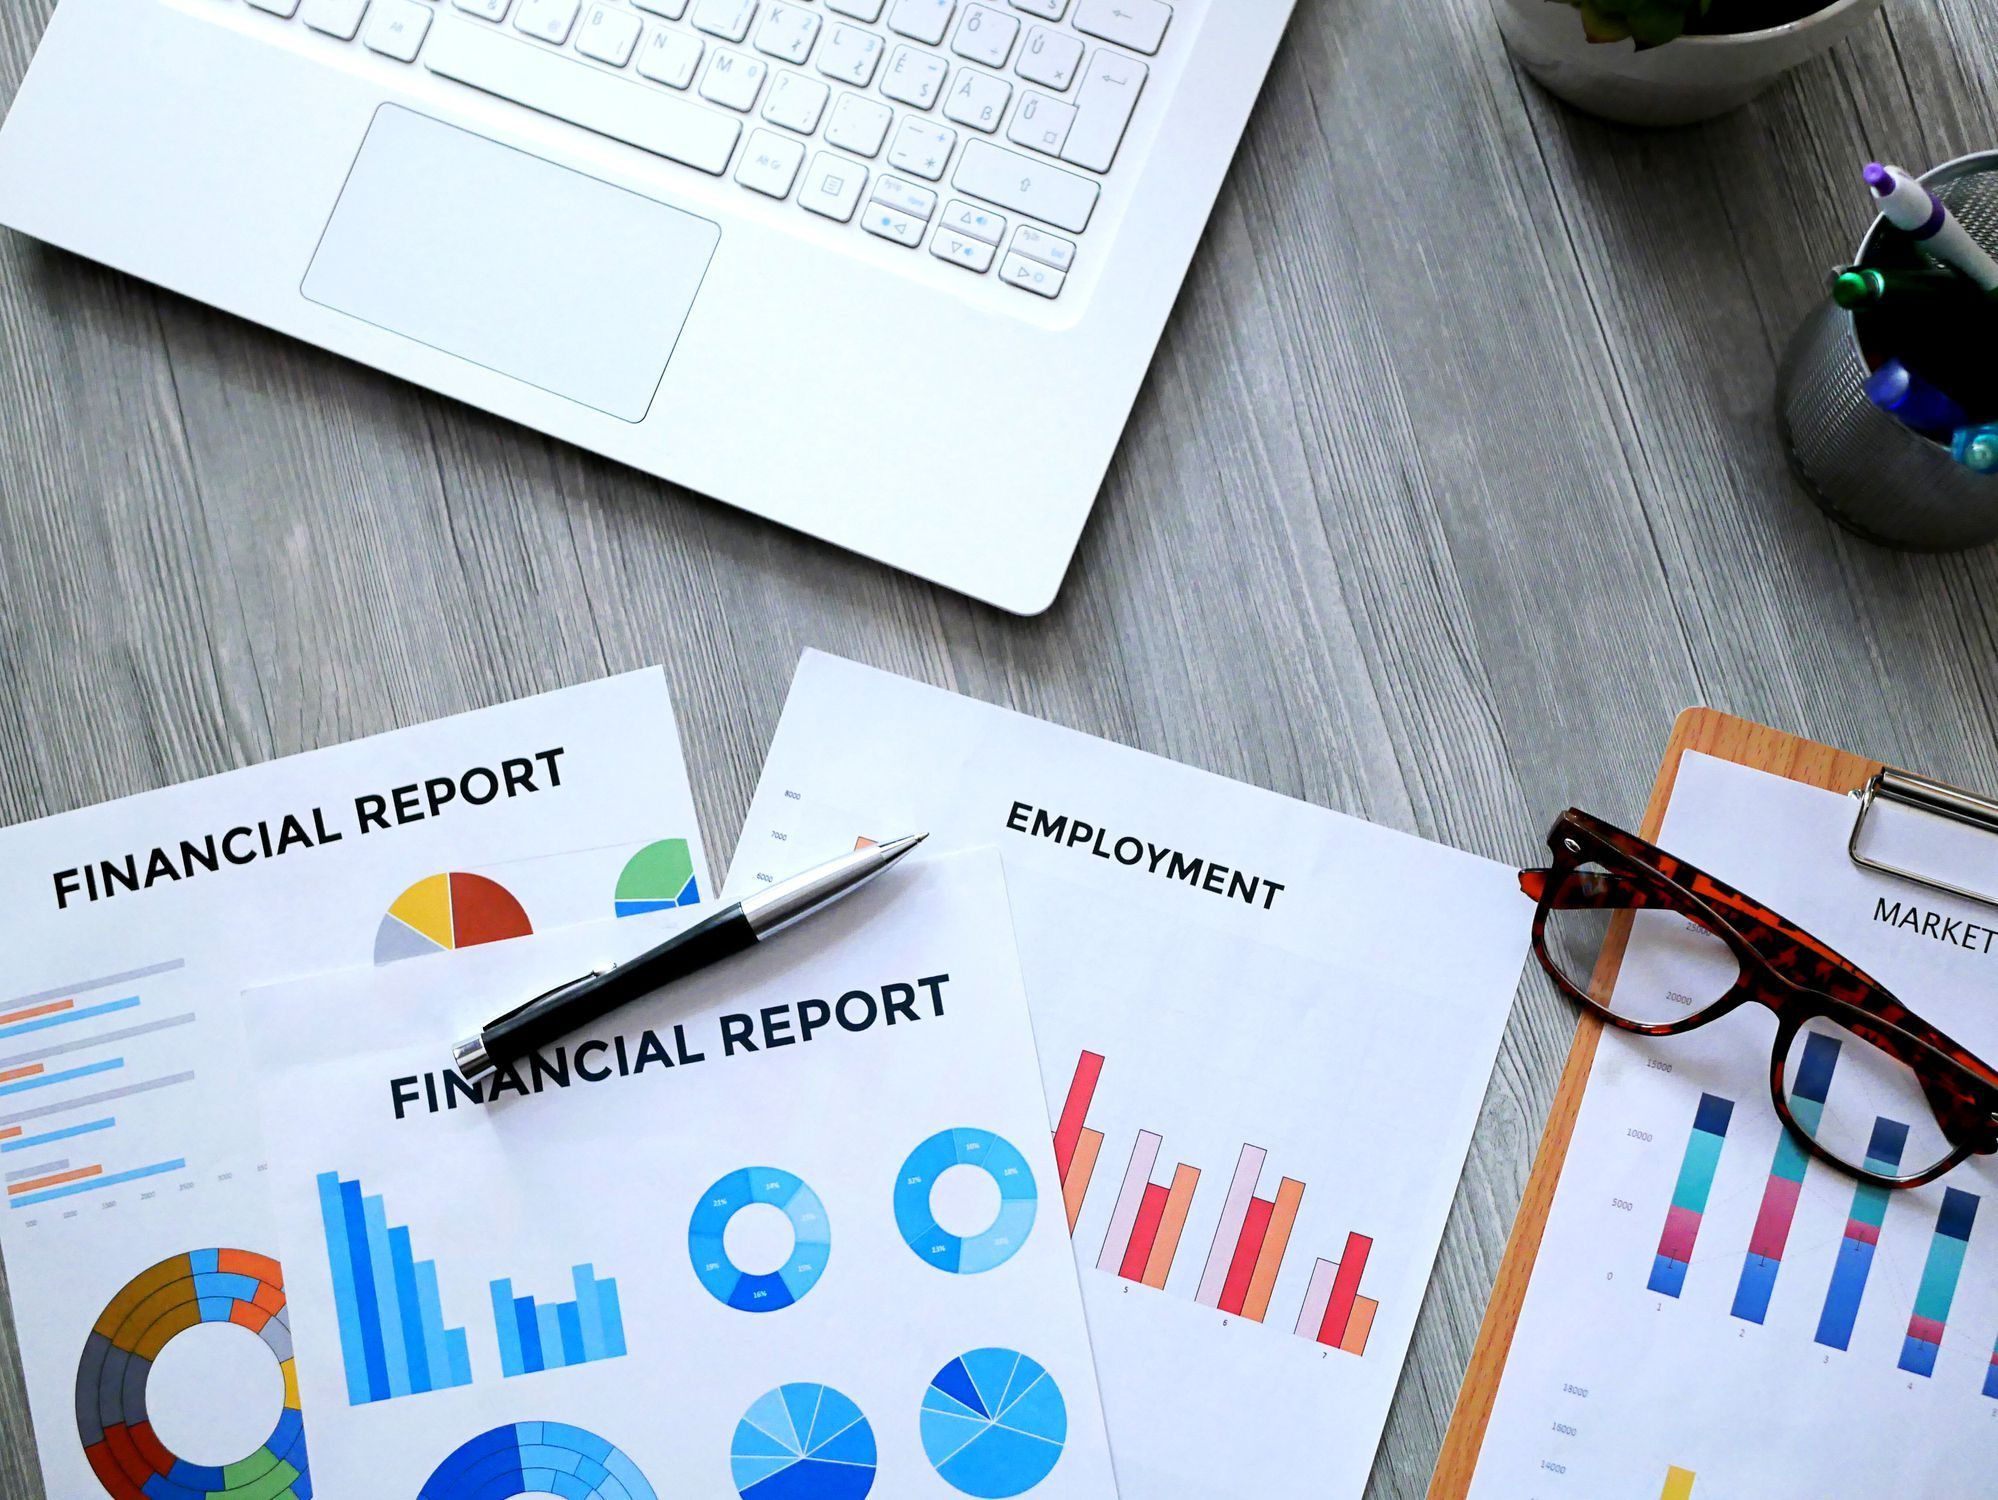 Repo 105 definition in 2020 financial accounting